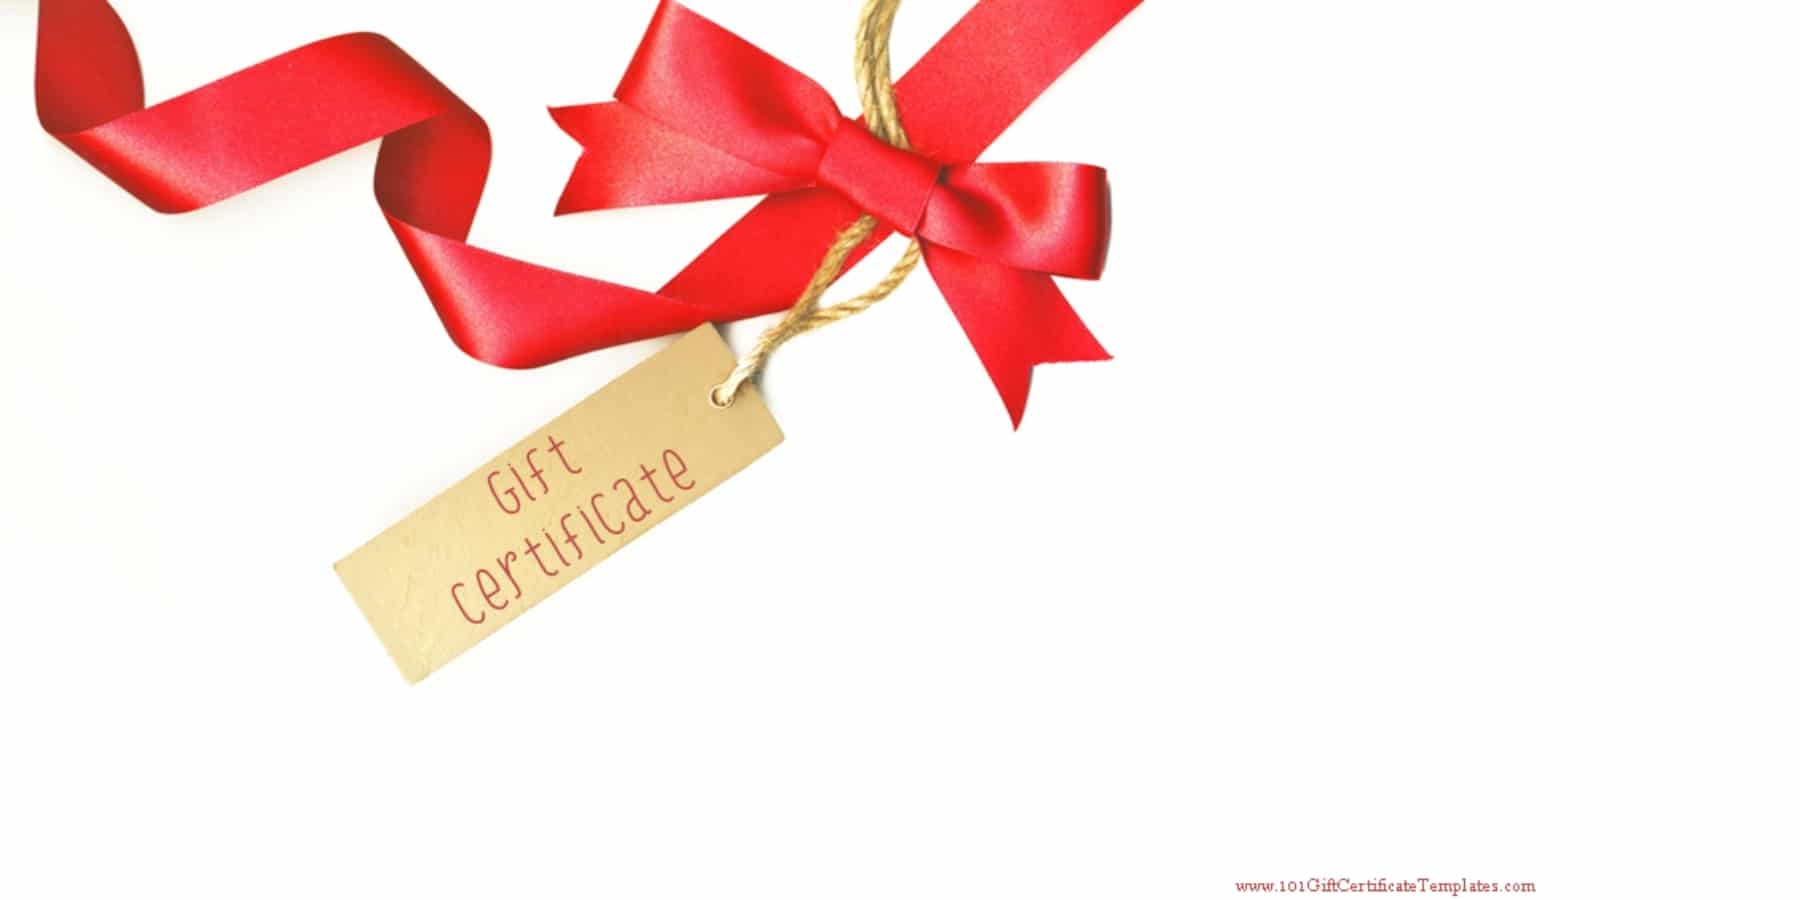 Printable gift certificate templates gift card which can be customized in any way with our gift card maker 1betcityfo Images